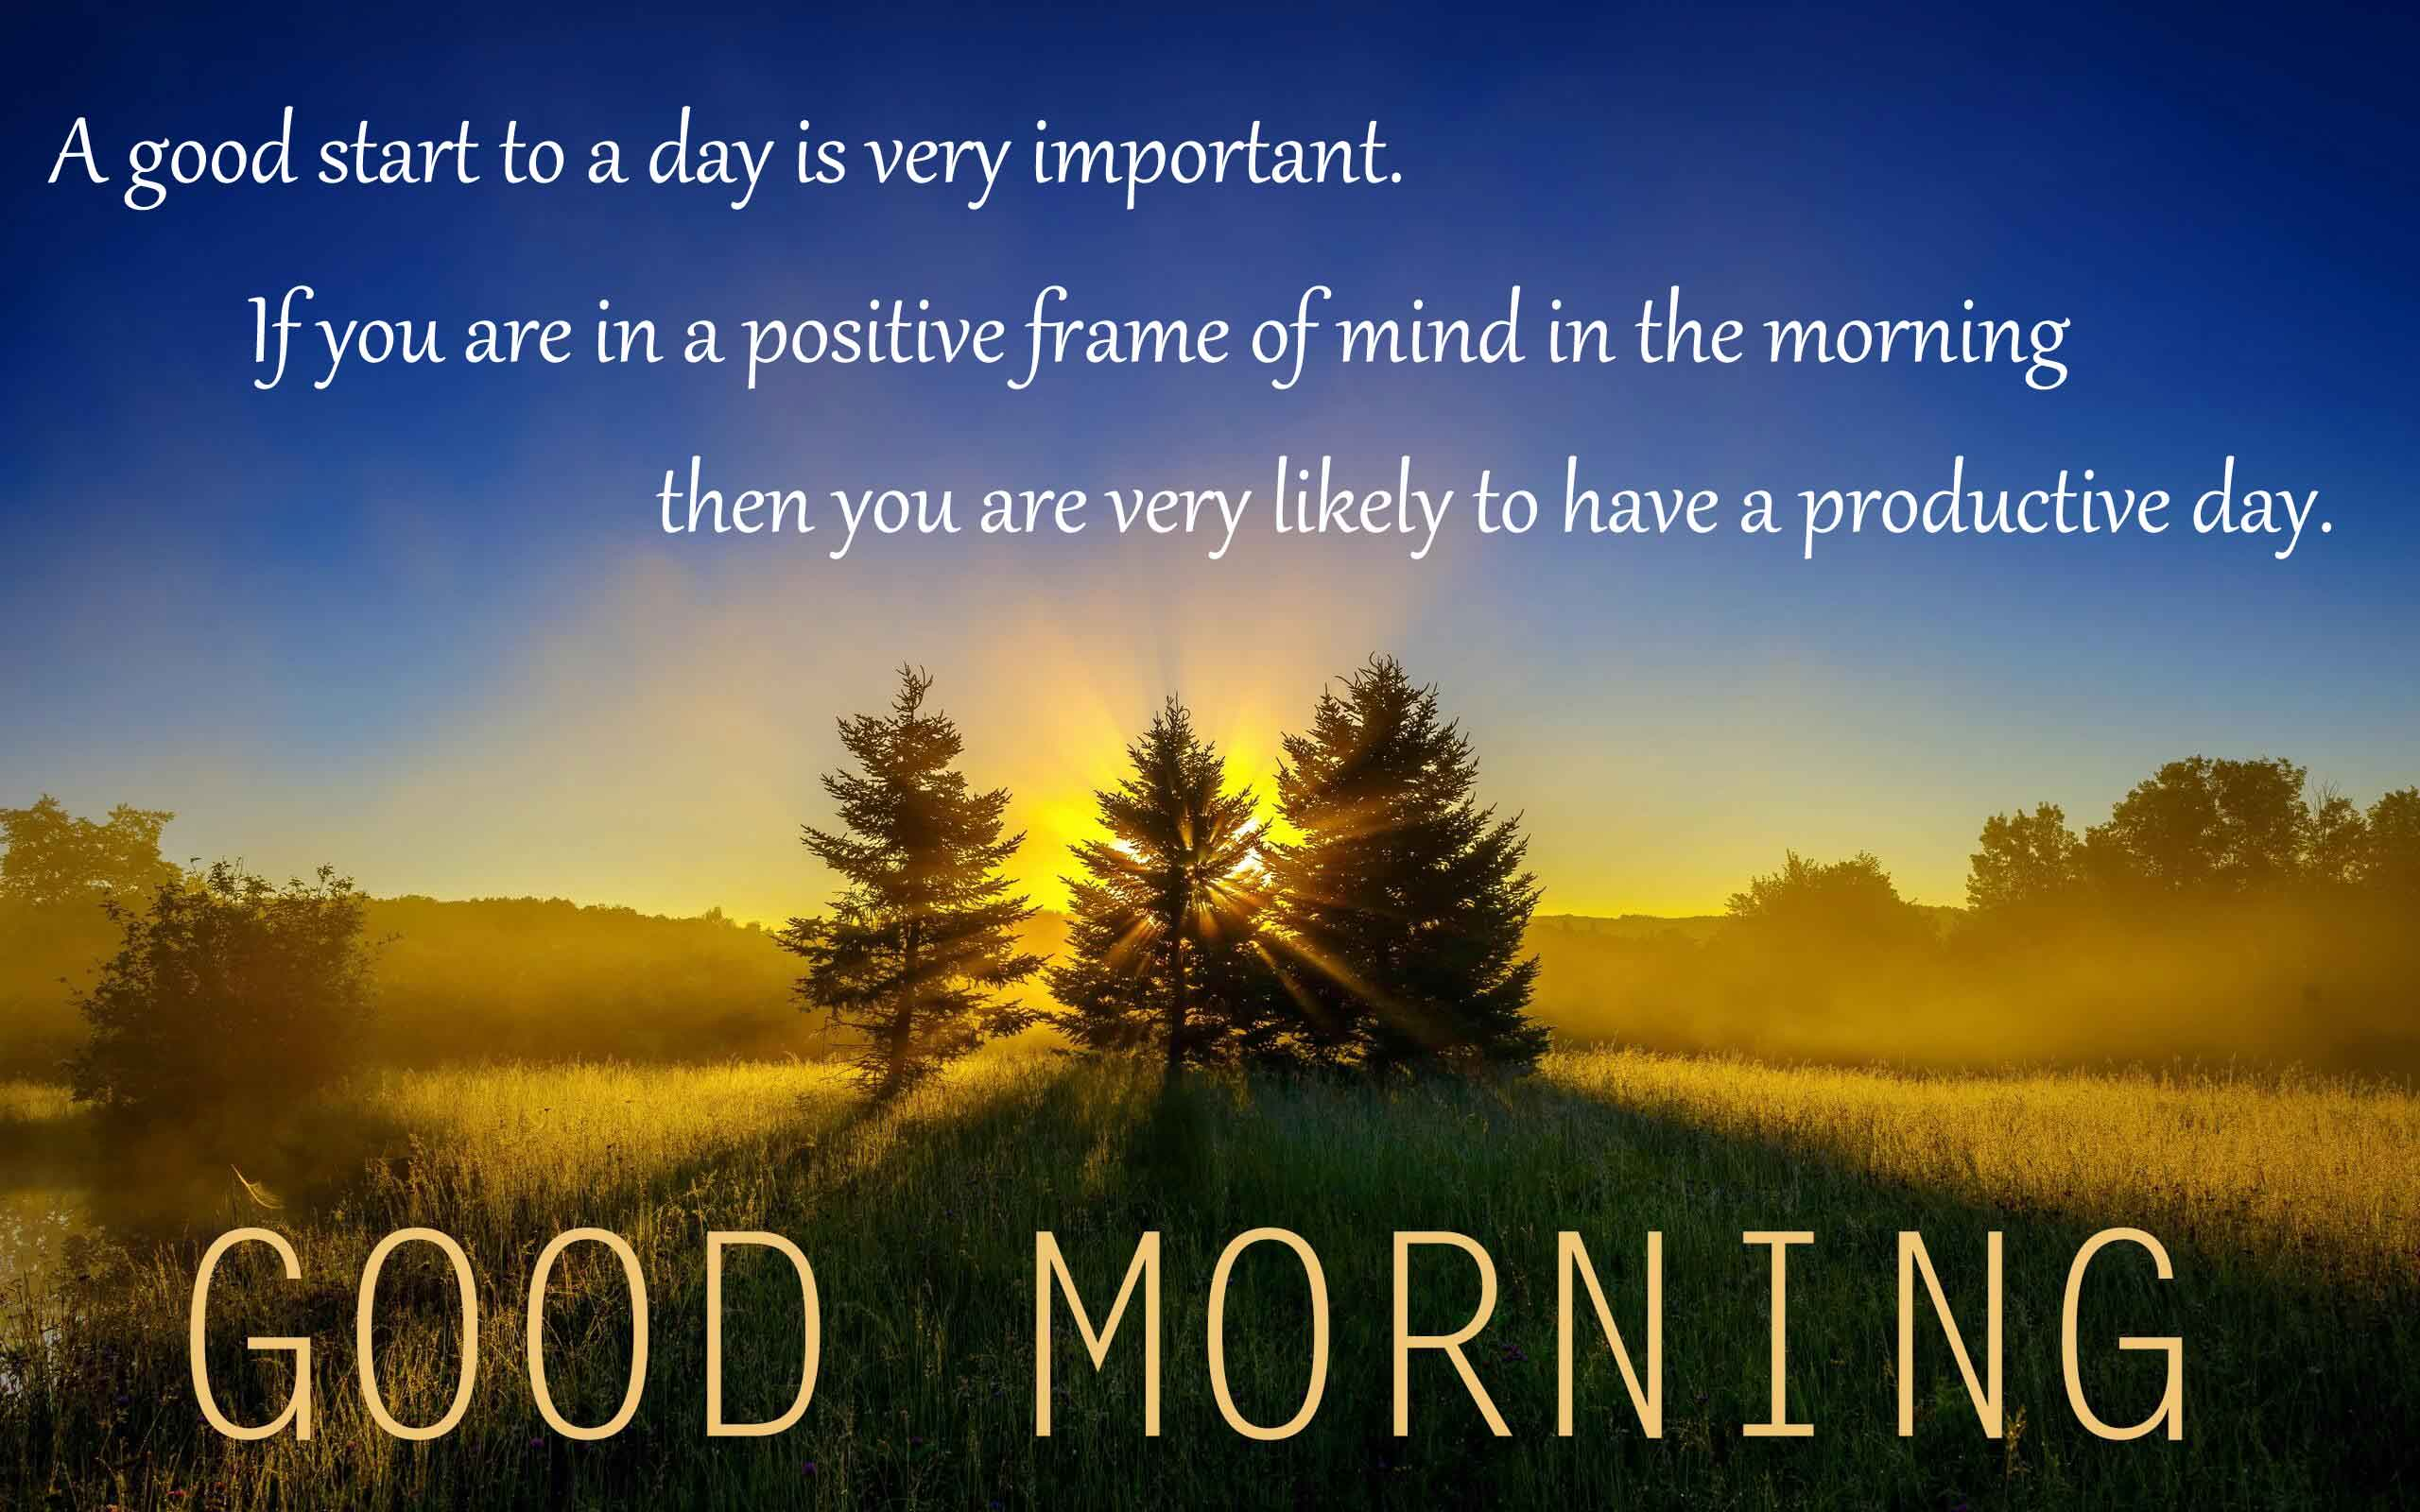 Good Morning Quotes for the Day - Well Quo